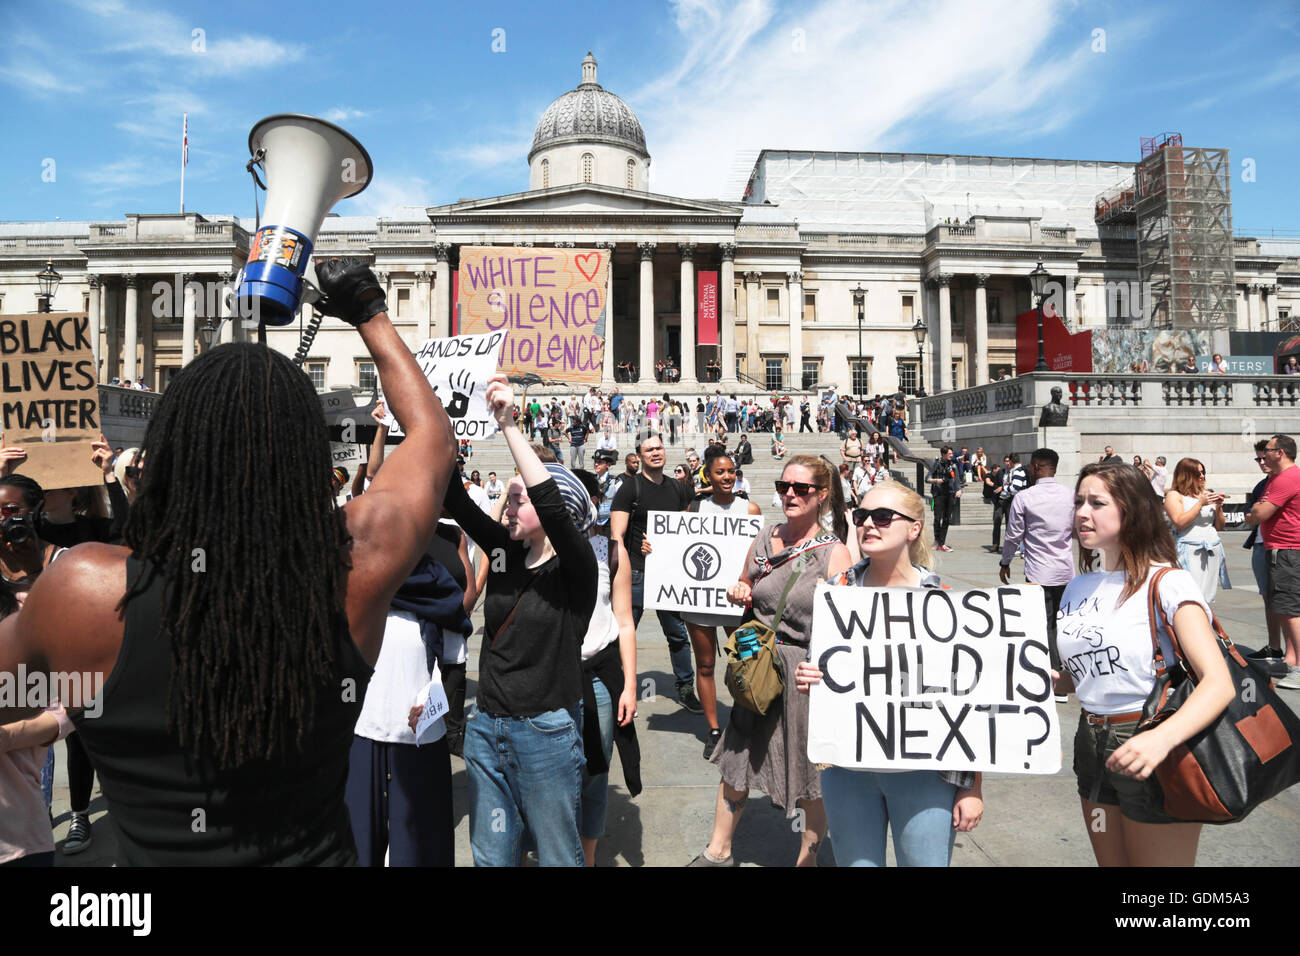 London, UK. 18th July, 2016. Demonstrators protest in trafalgar square at the shooting of African Americans and - Stock Image